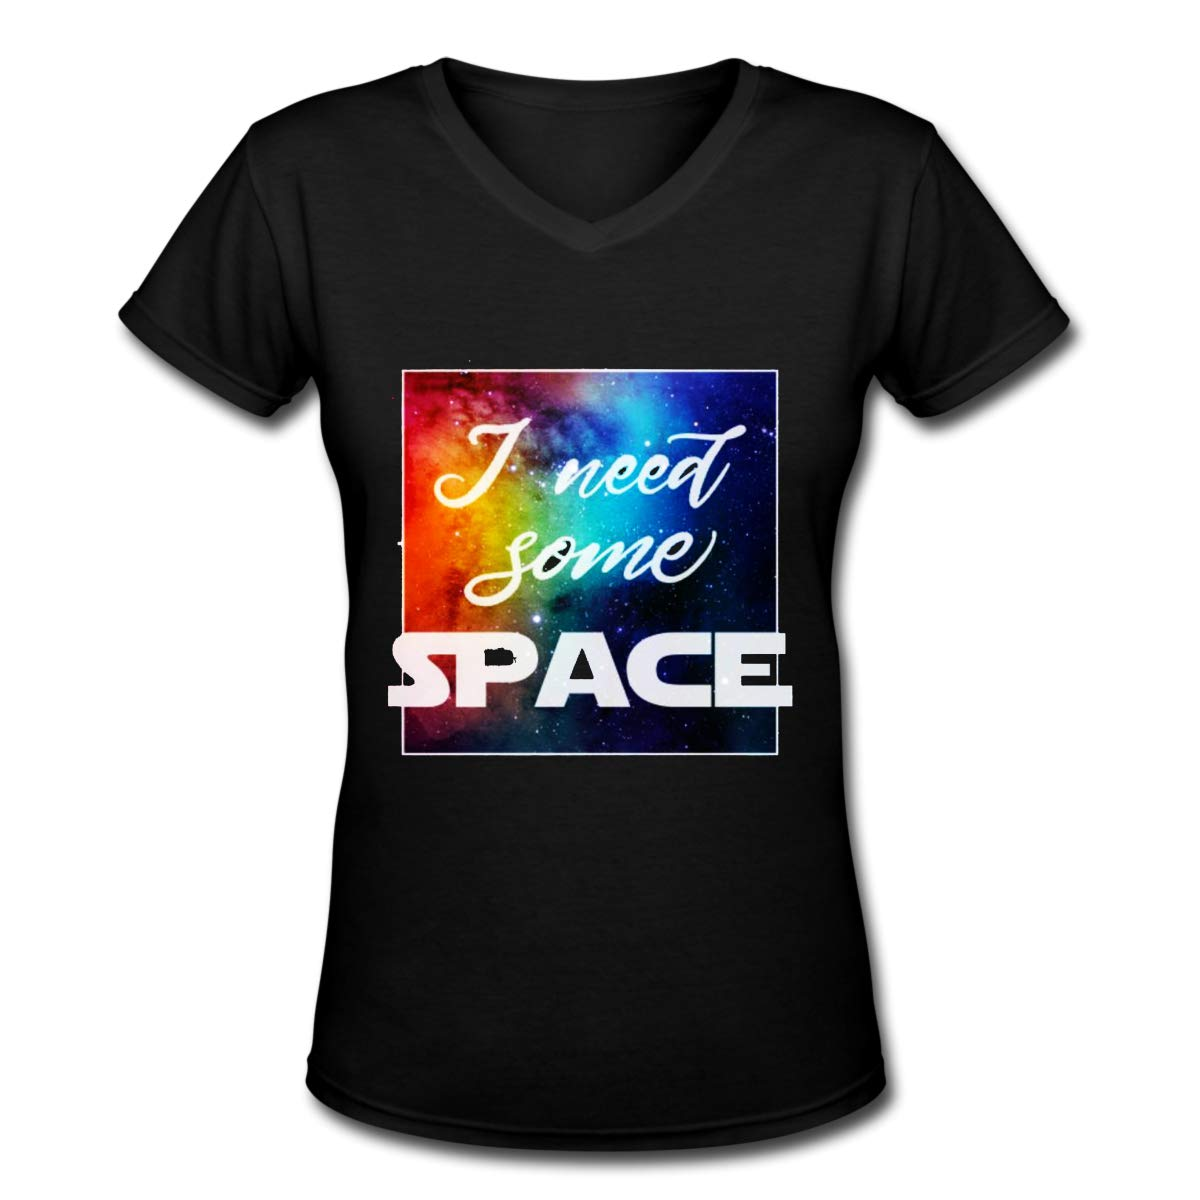 I Need Some Space Womens T Shirt Casual Cotton Short Sleeve V-Neck Graphic T-Shirt Tops Tees